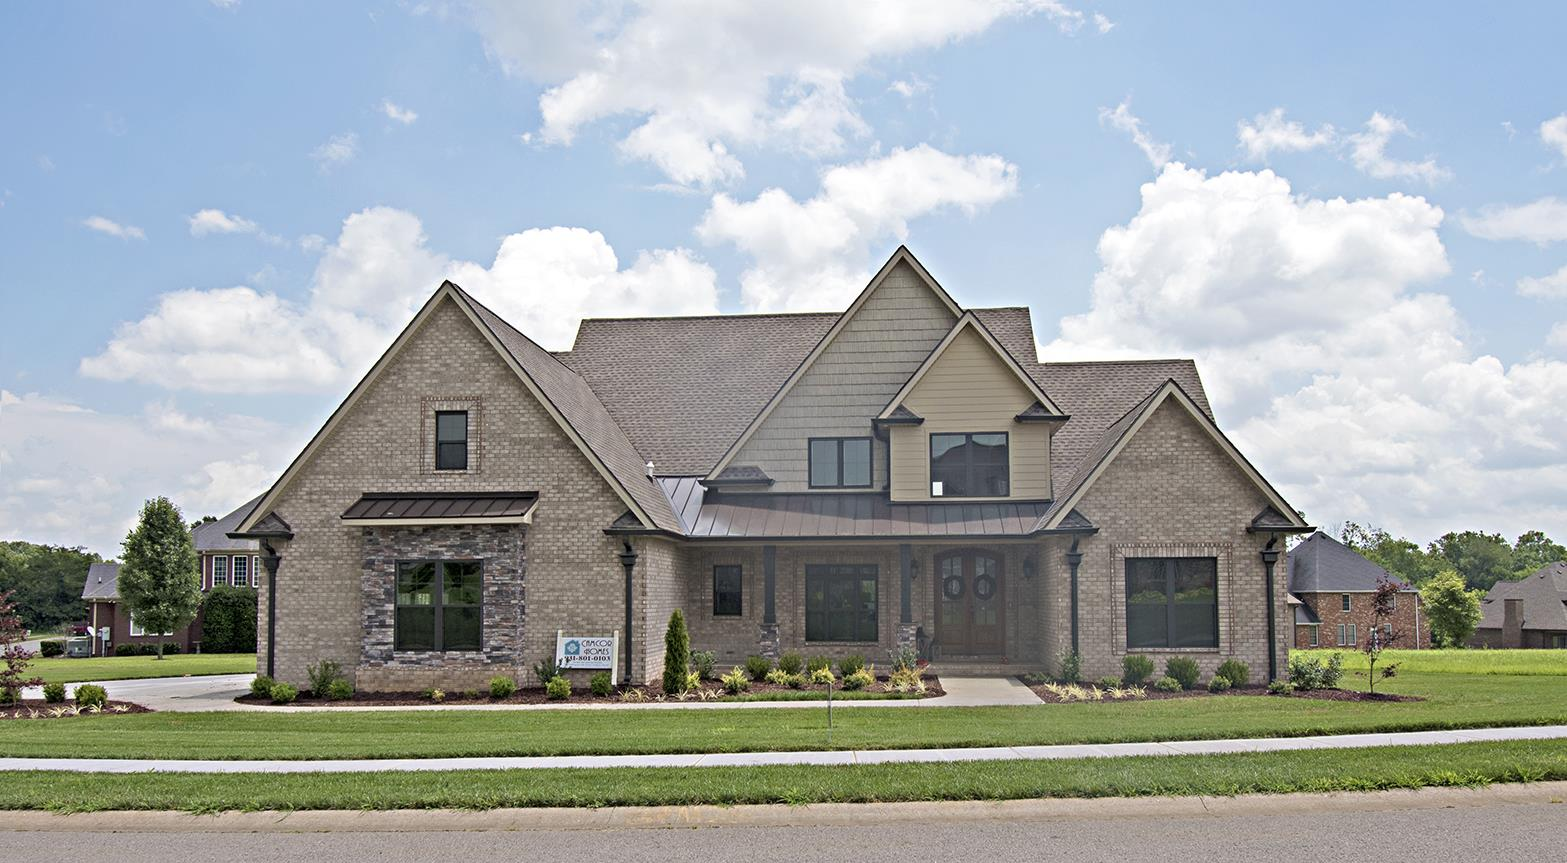 1492 Collins View Way (Lot 104), Clarksville, TN 37043 - Clarksville, TN real estate listing